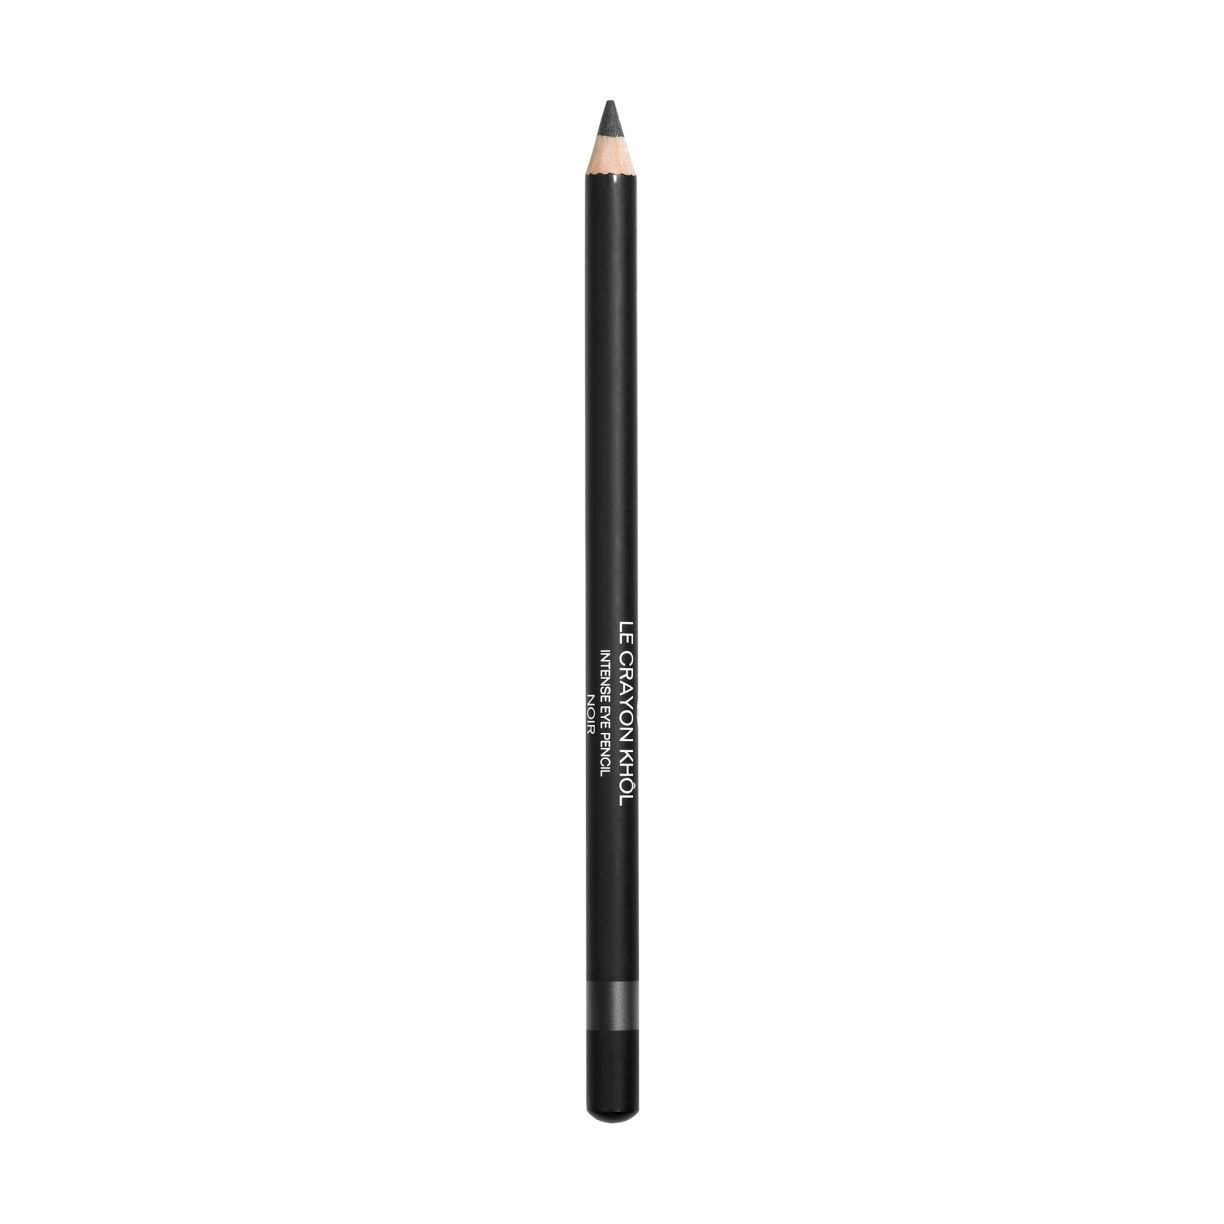 LE CRAYON KHÔL INTENSE EYE PENCIL